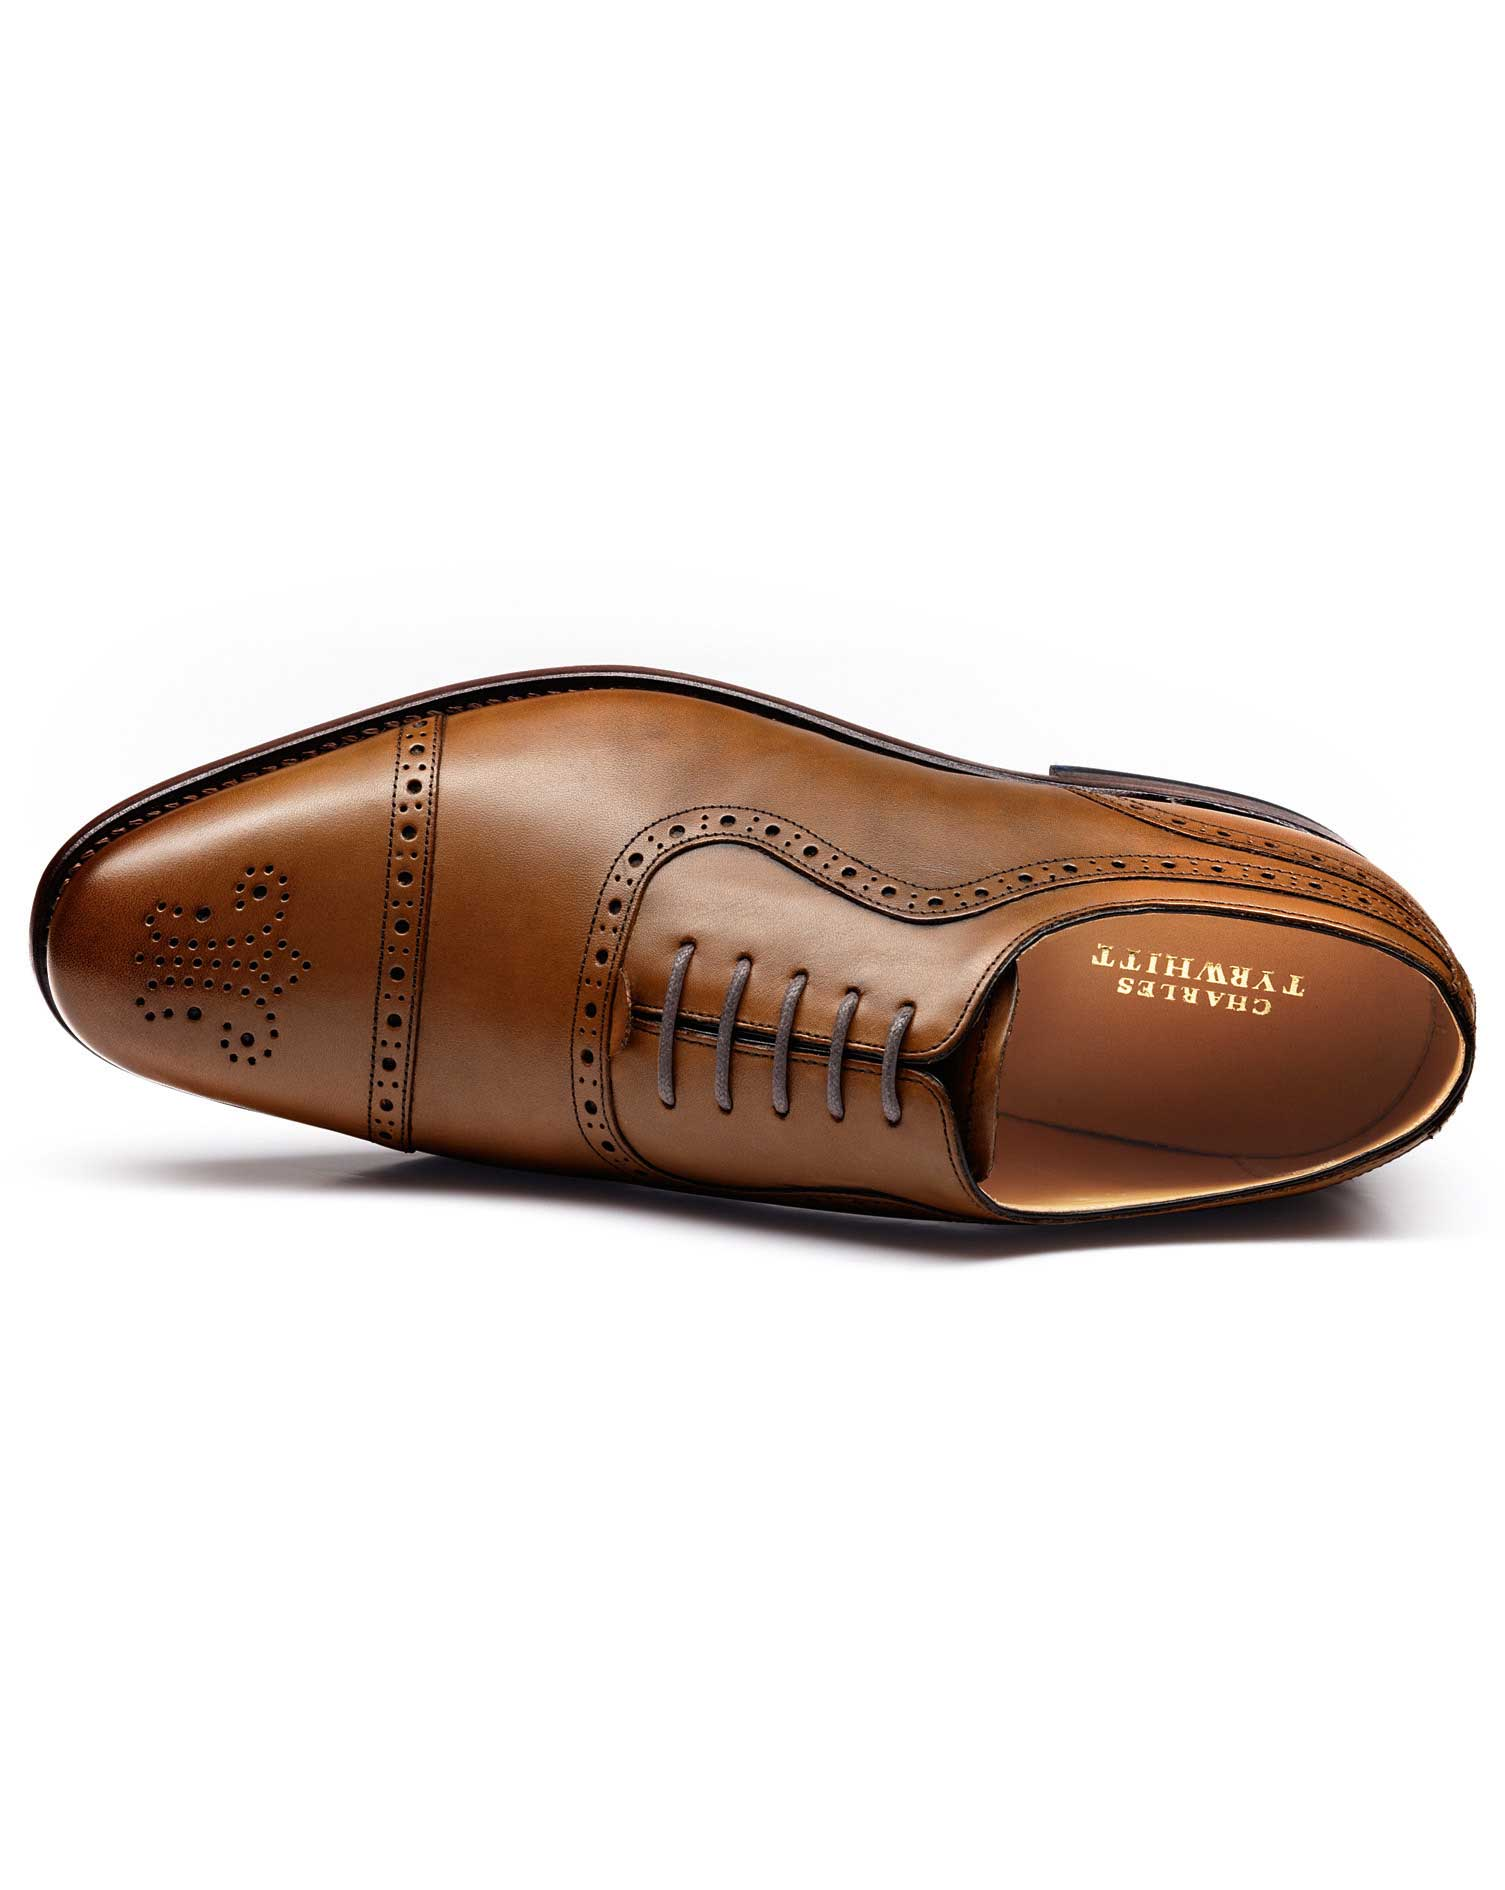 Brown Parker Toe Cap Brogue Oxford Shoes Size 10 R by Charles Tyrwhitt